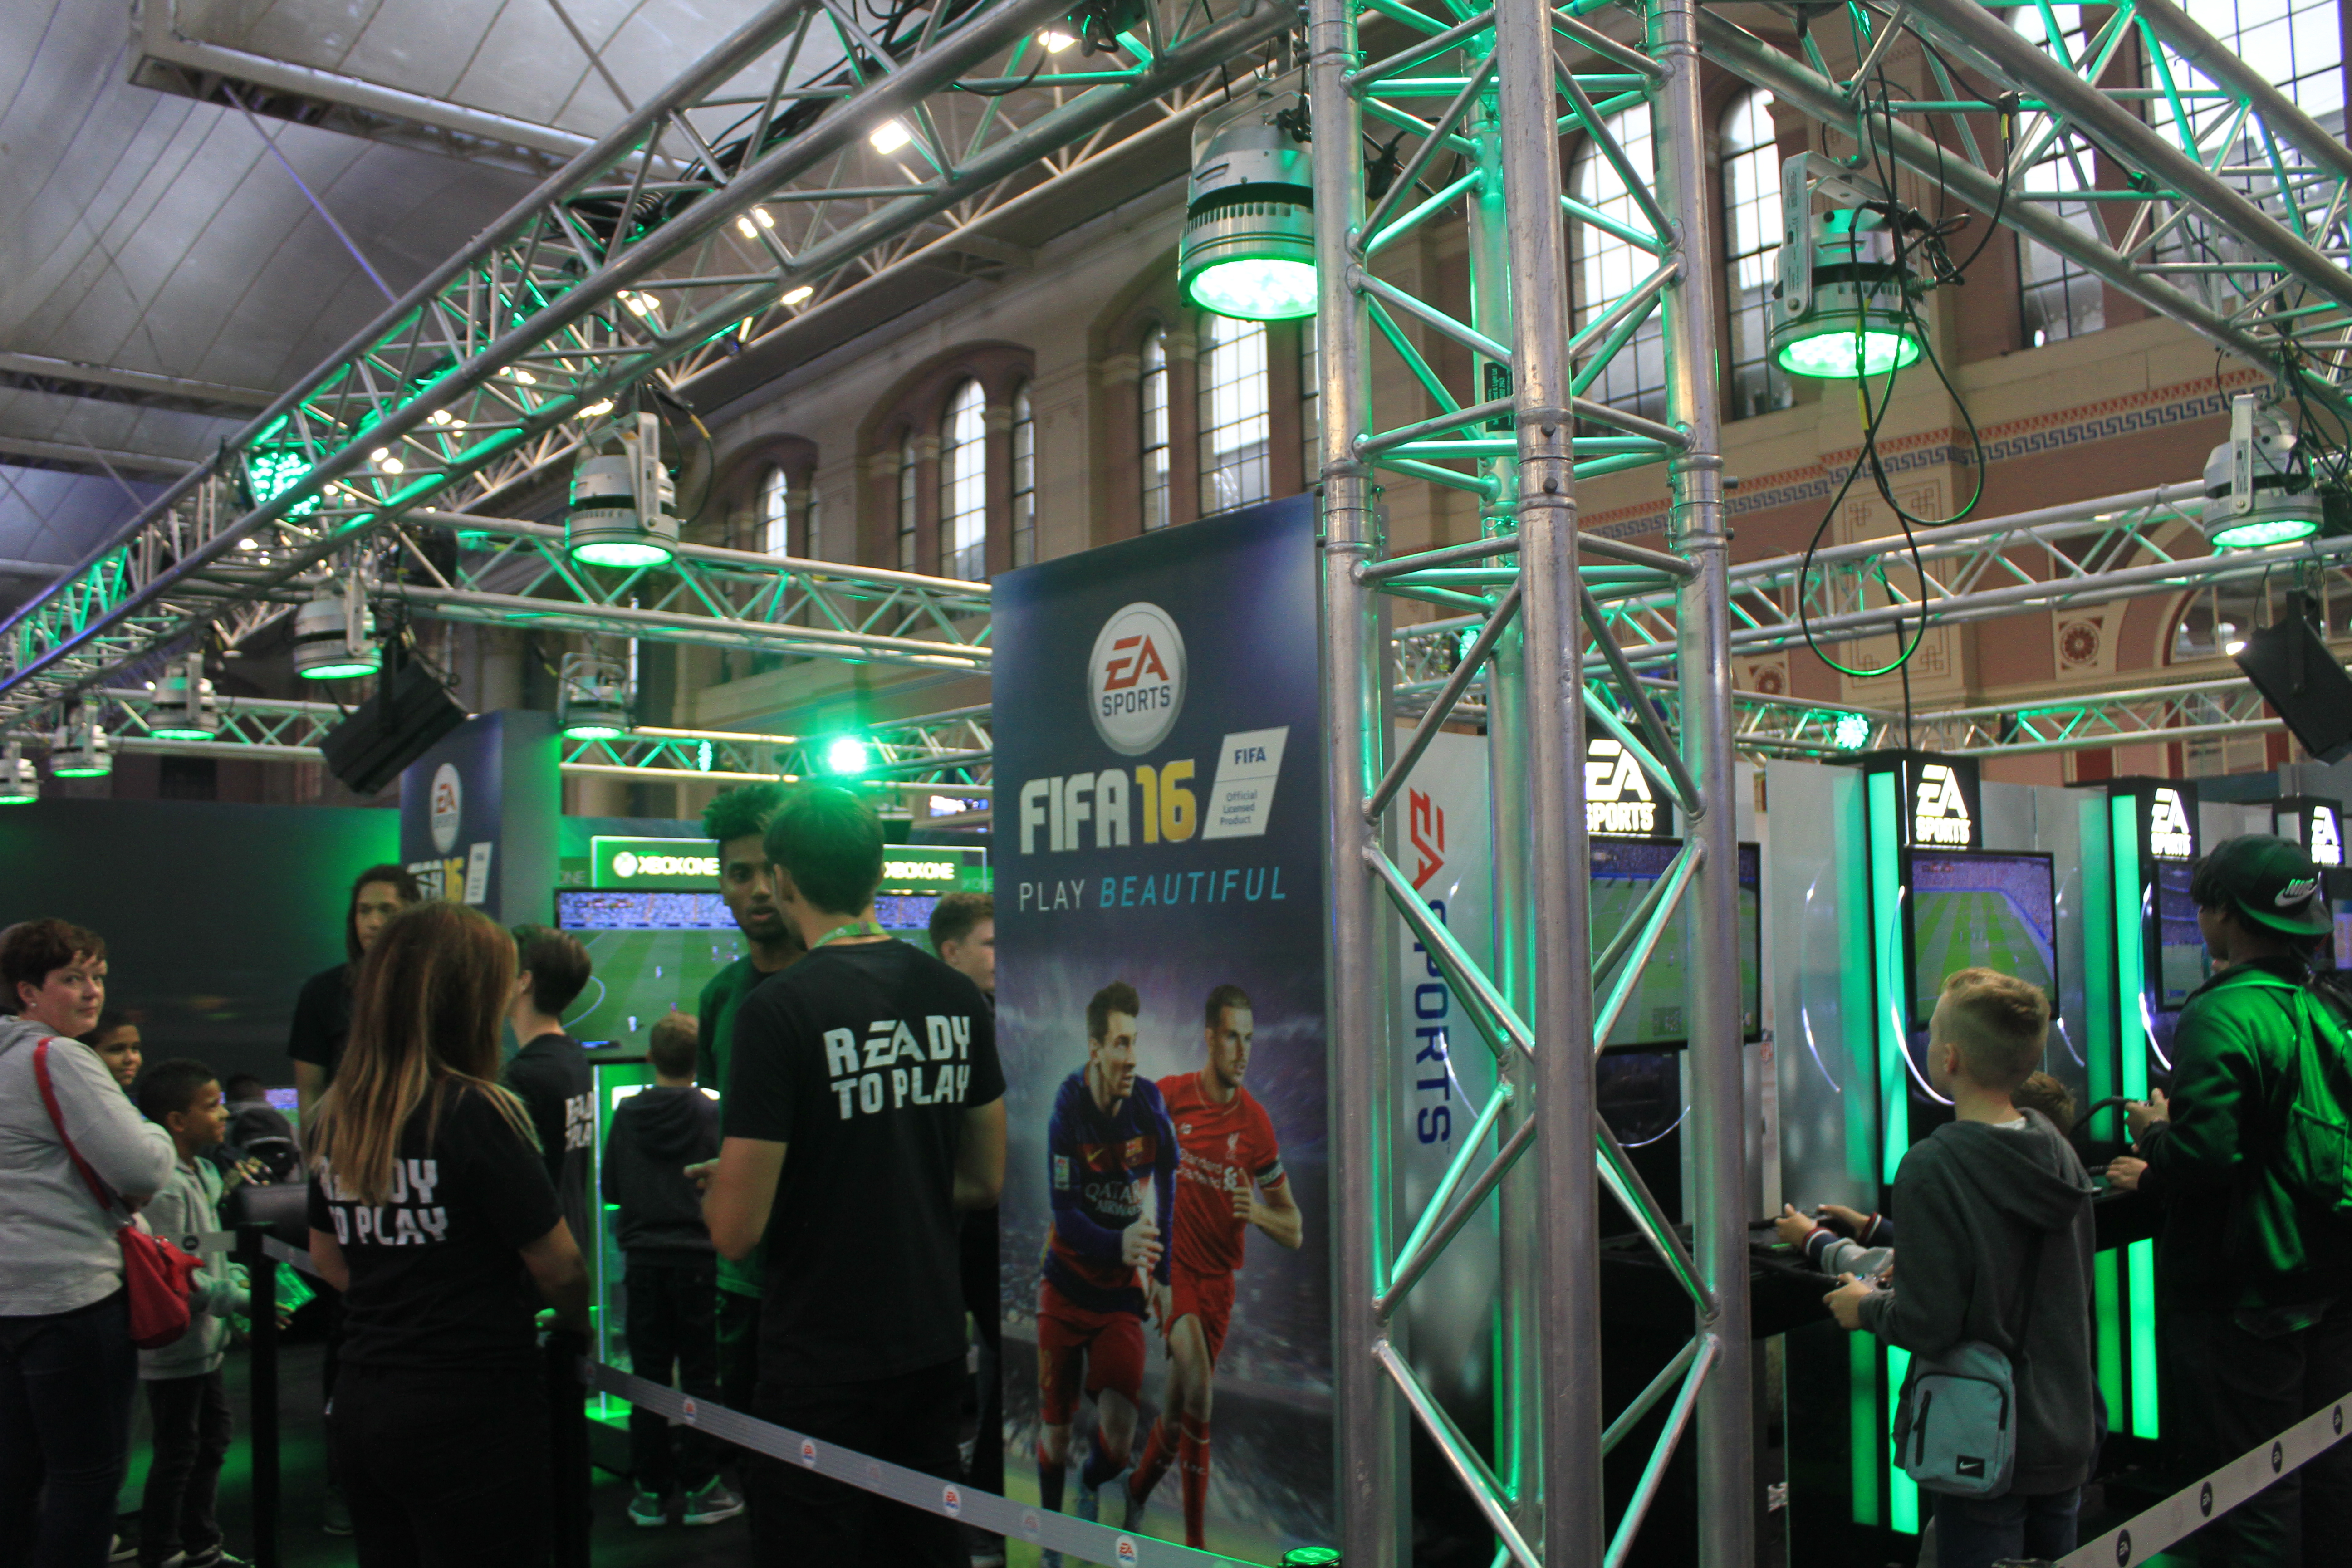 """No matter how had they try. EA's """"FIFA 16"""" booth.  William Morris, 2015 """"Legends of Gaming Live 2015"""""""